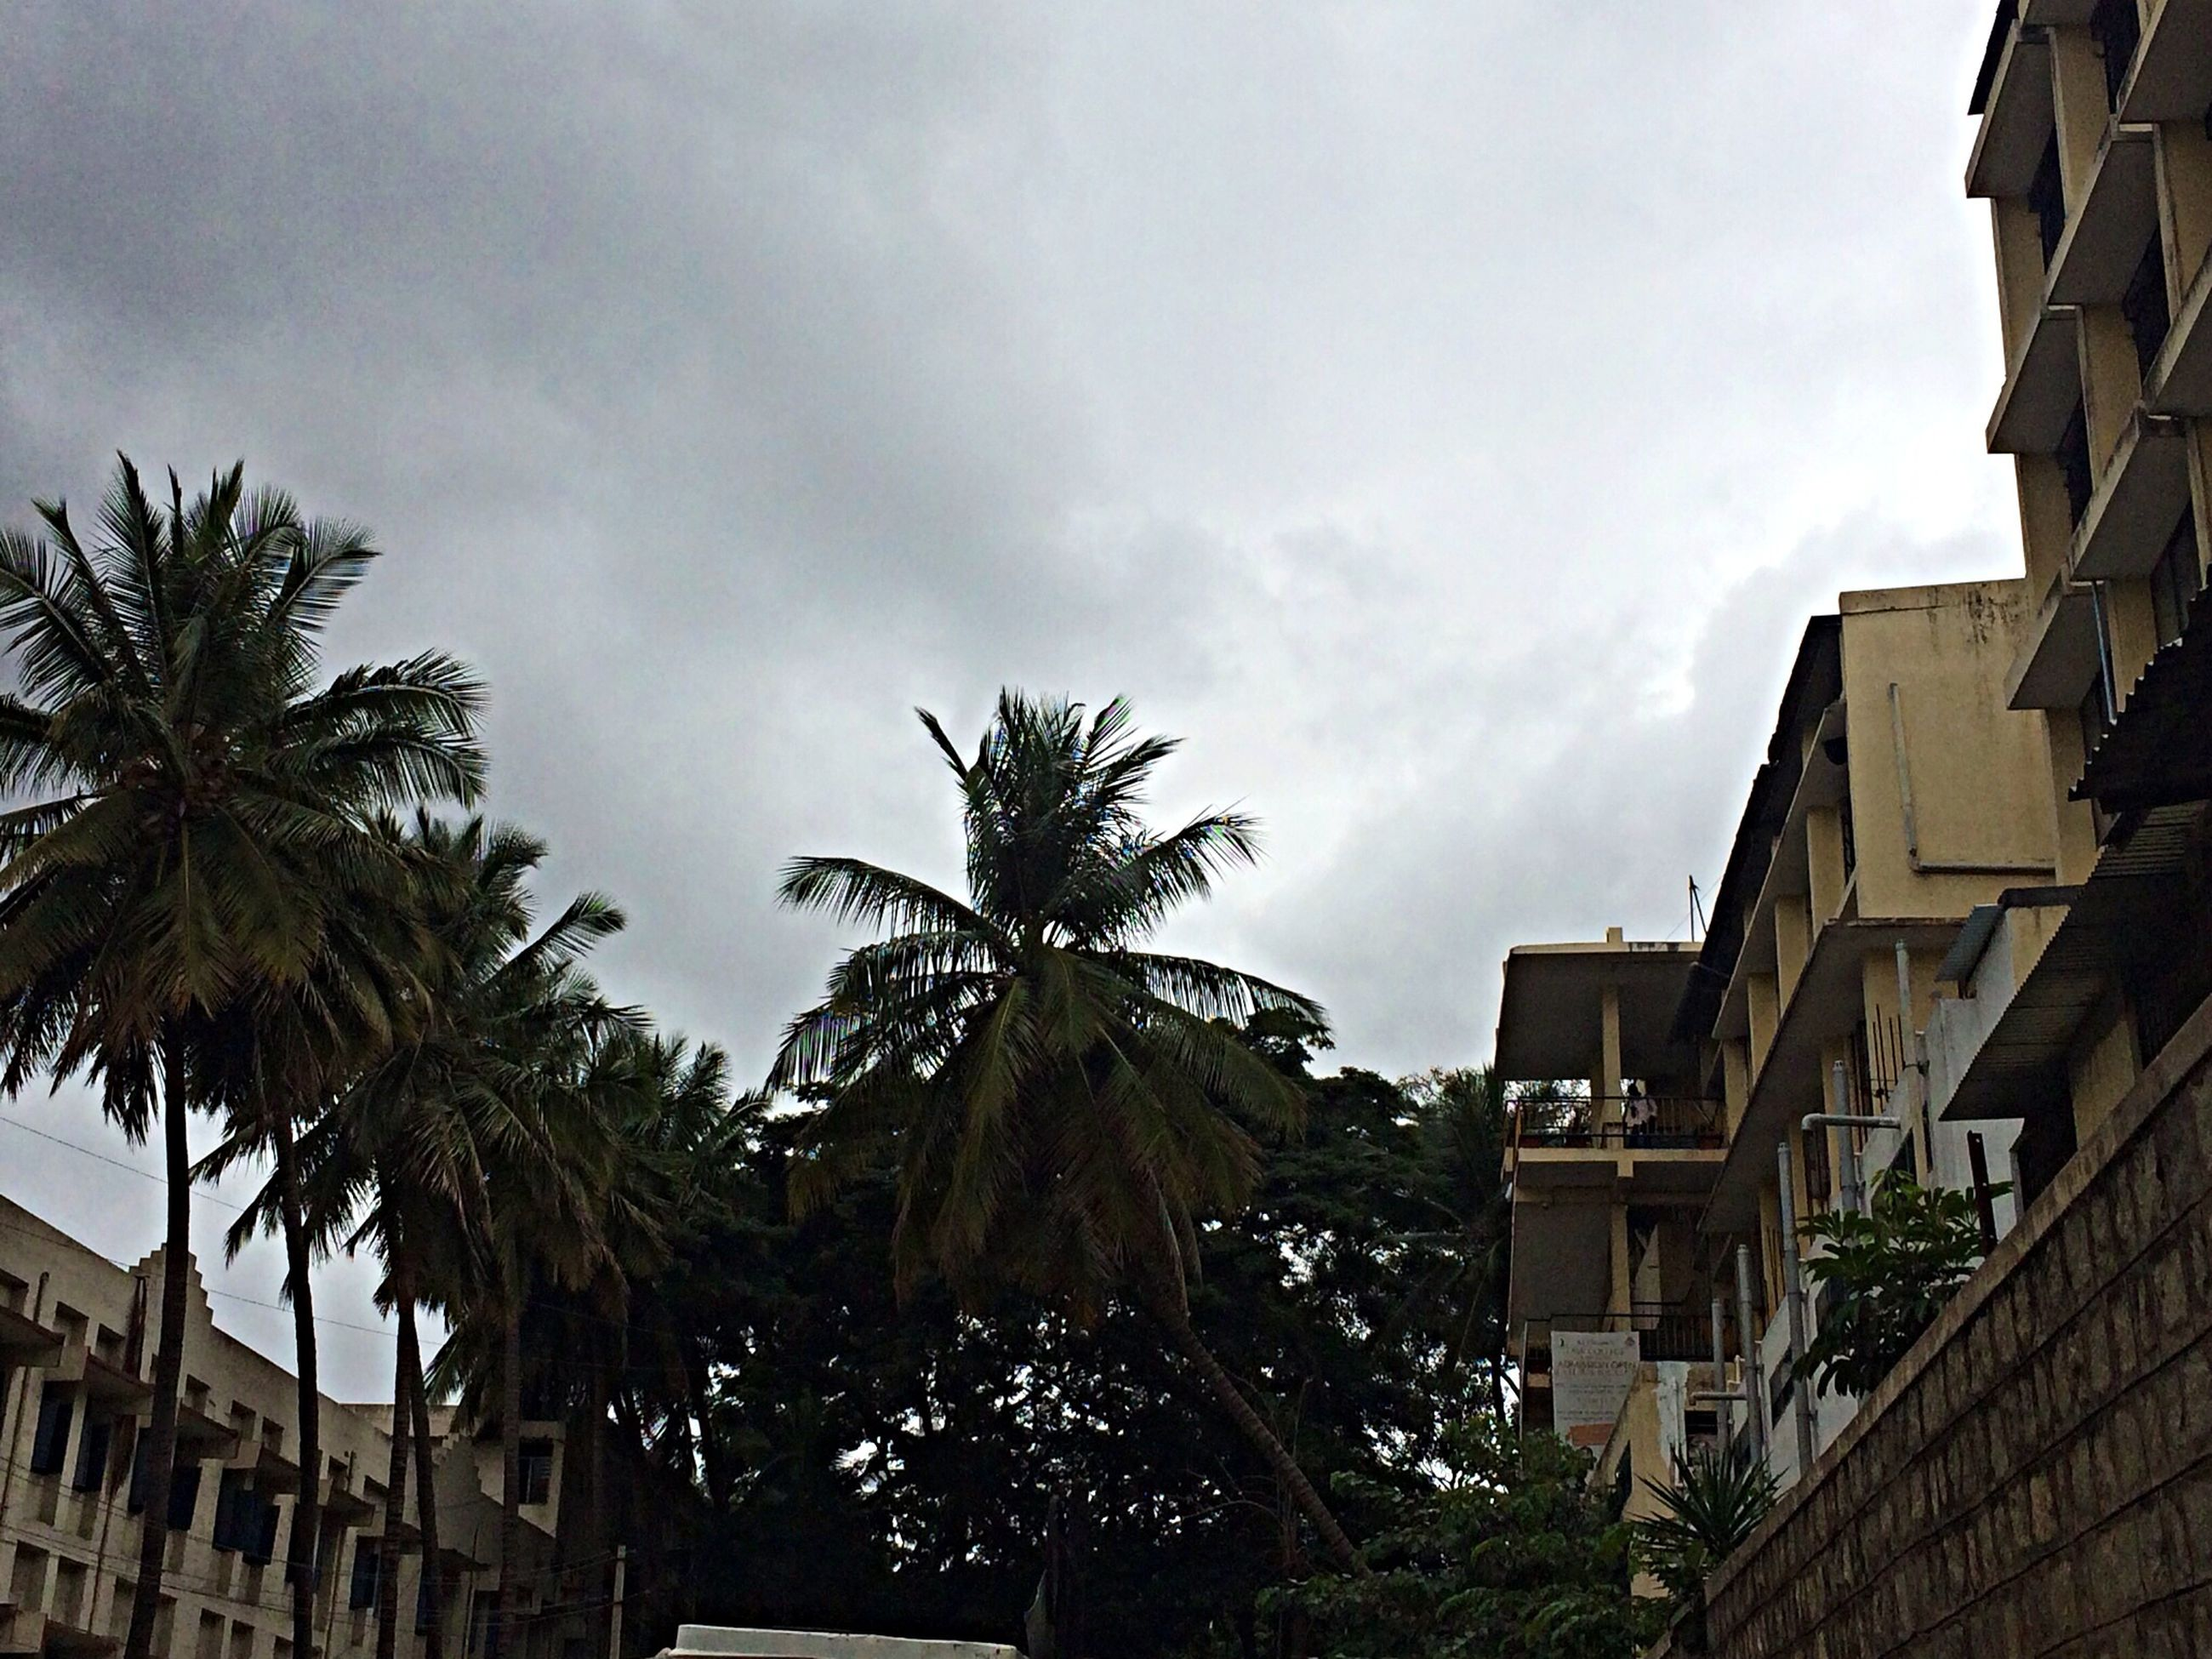 building exterior, architecture, built structure, palm tree, tree, sky, low angle view, residential building, house, residential structure, city, building, cloud - sky, cloud, outdoors, growth, sunlight, day, no people, street light